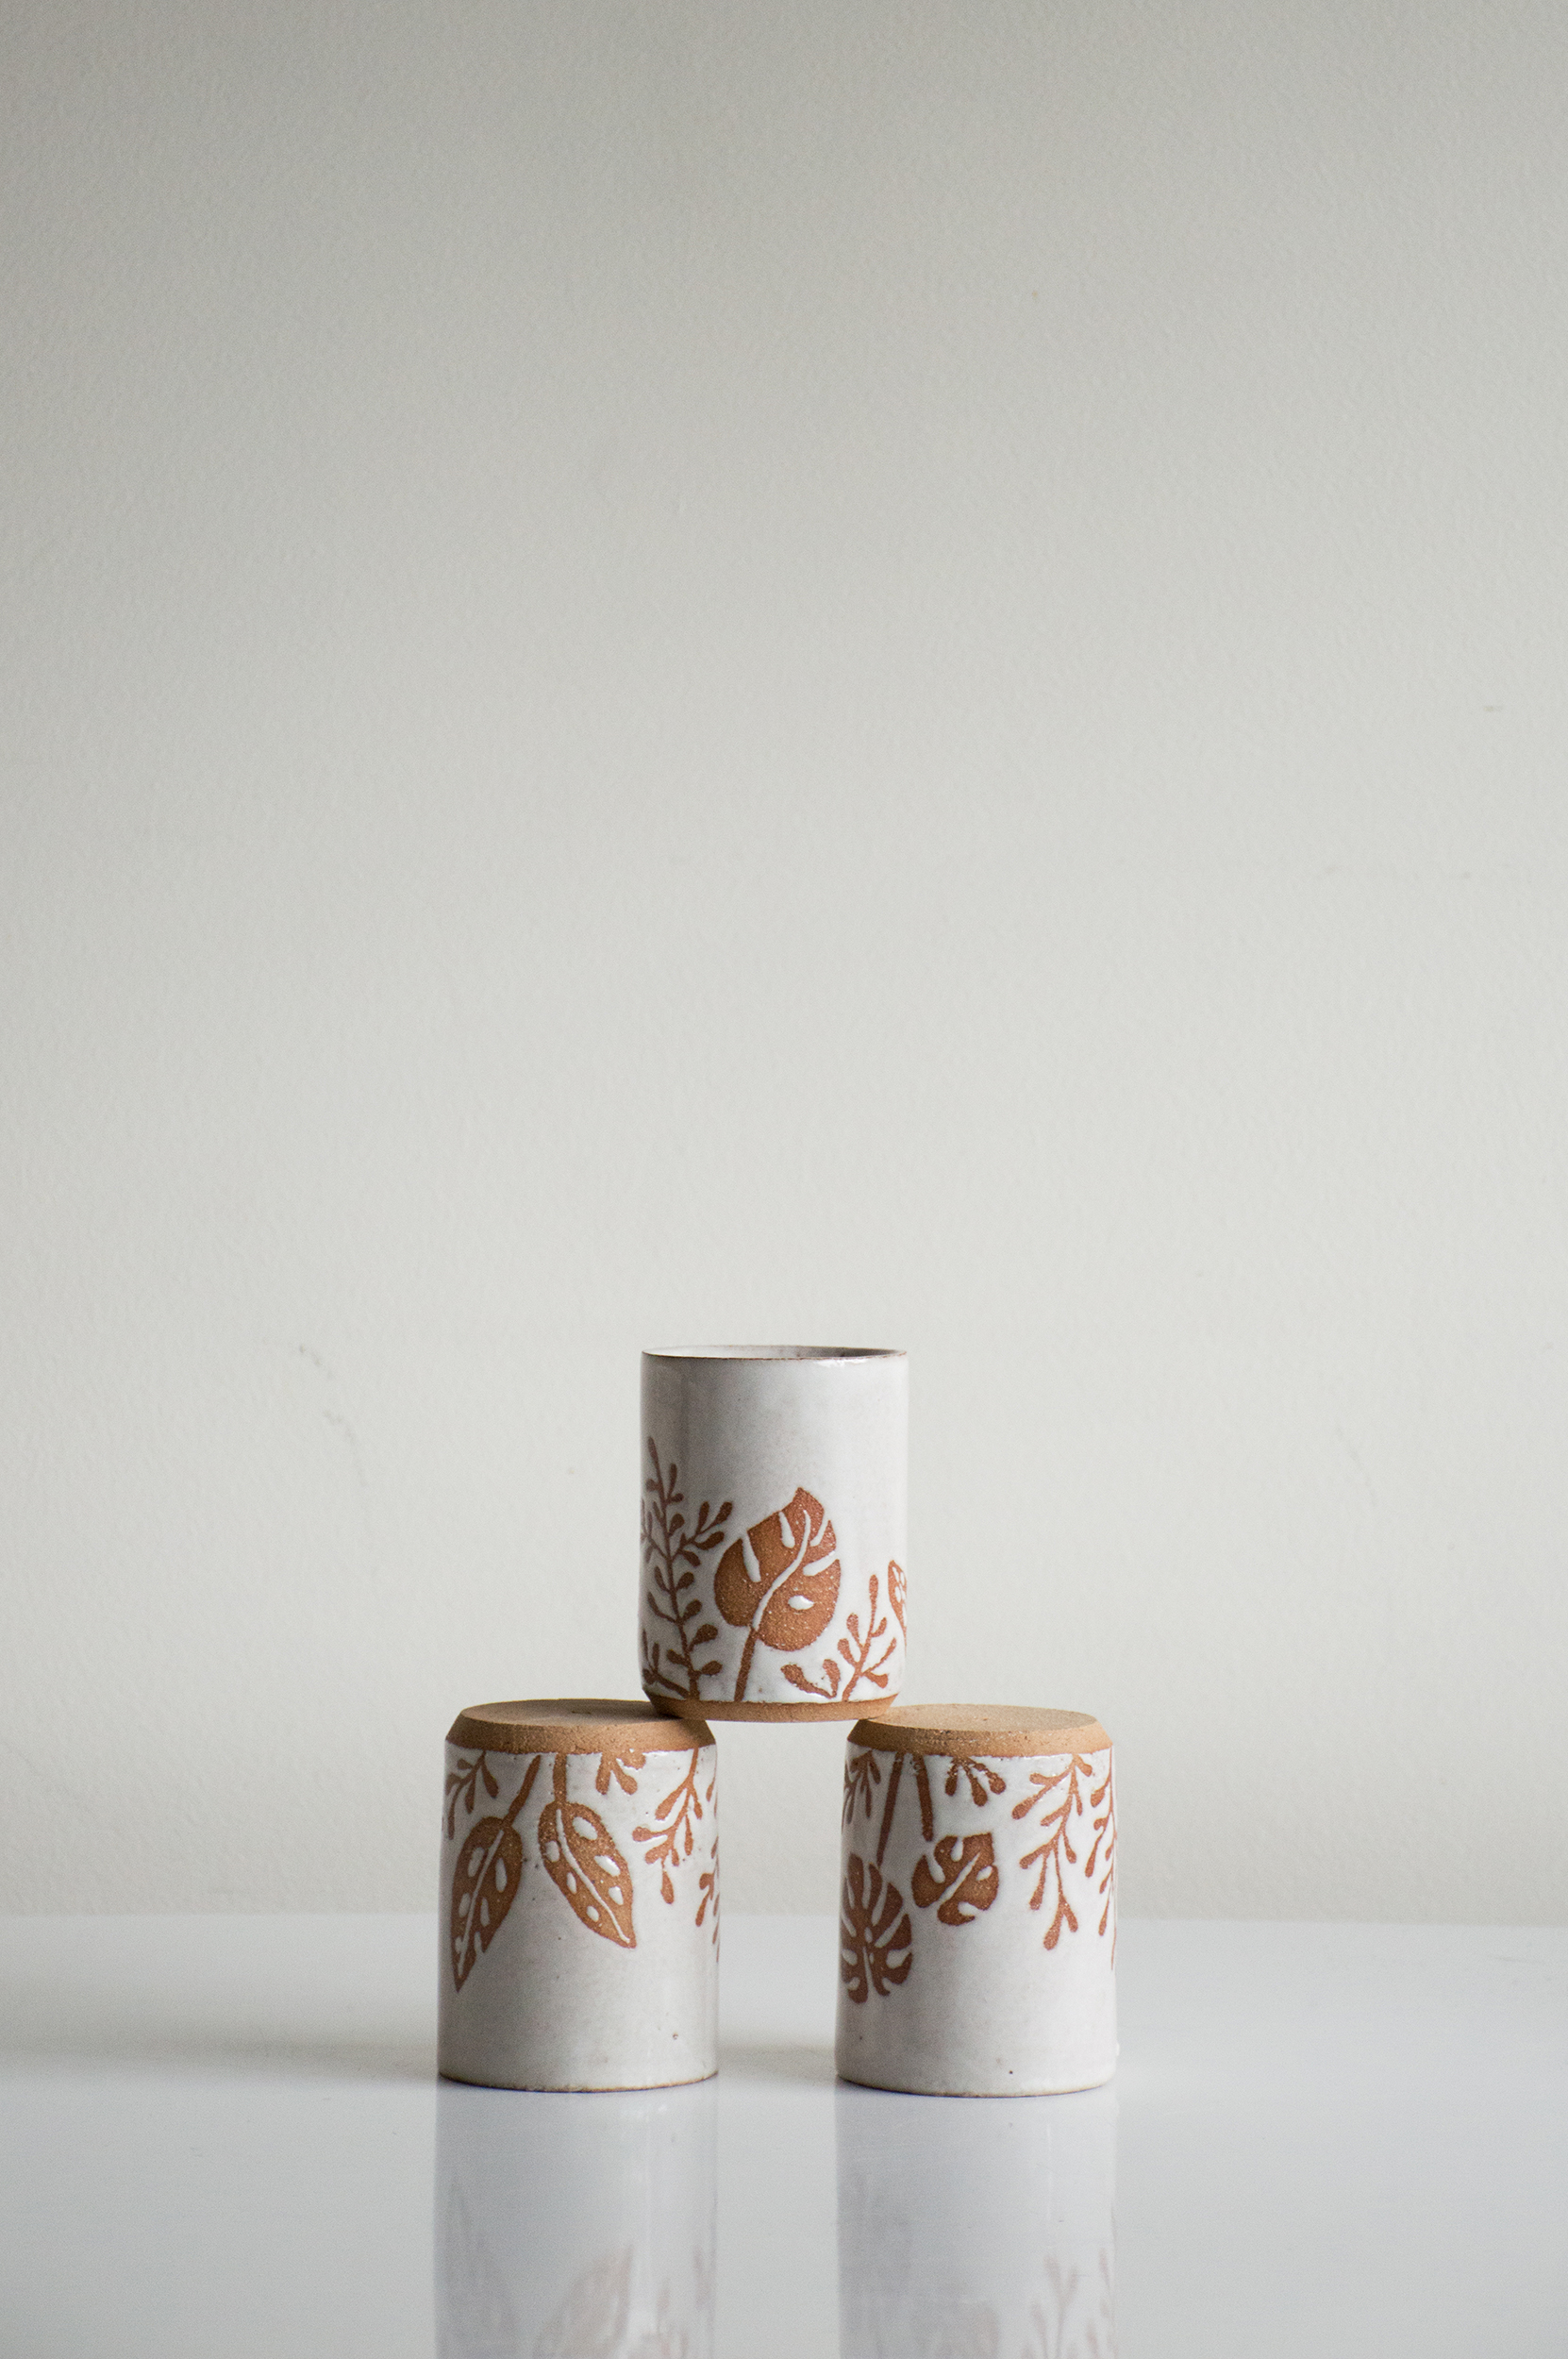 Botanical tumbler - Petite vessel patterned with philodendrons, smoke plant and palm leaf.Dimensions | 3